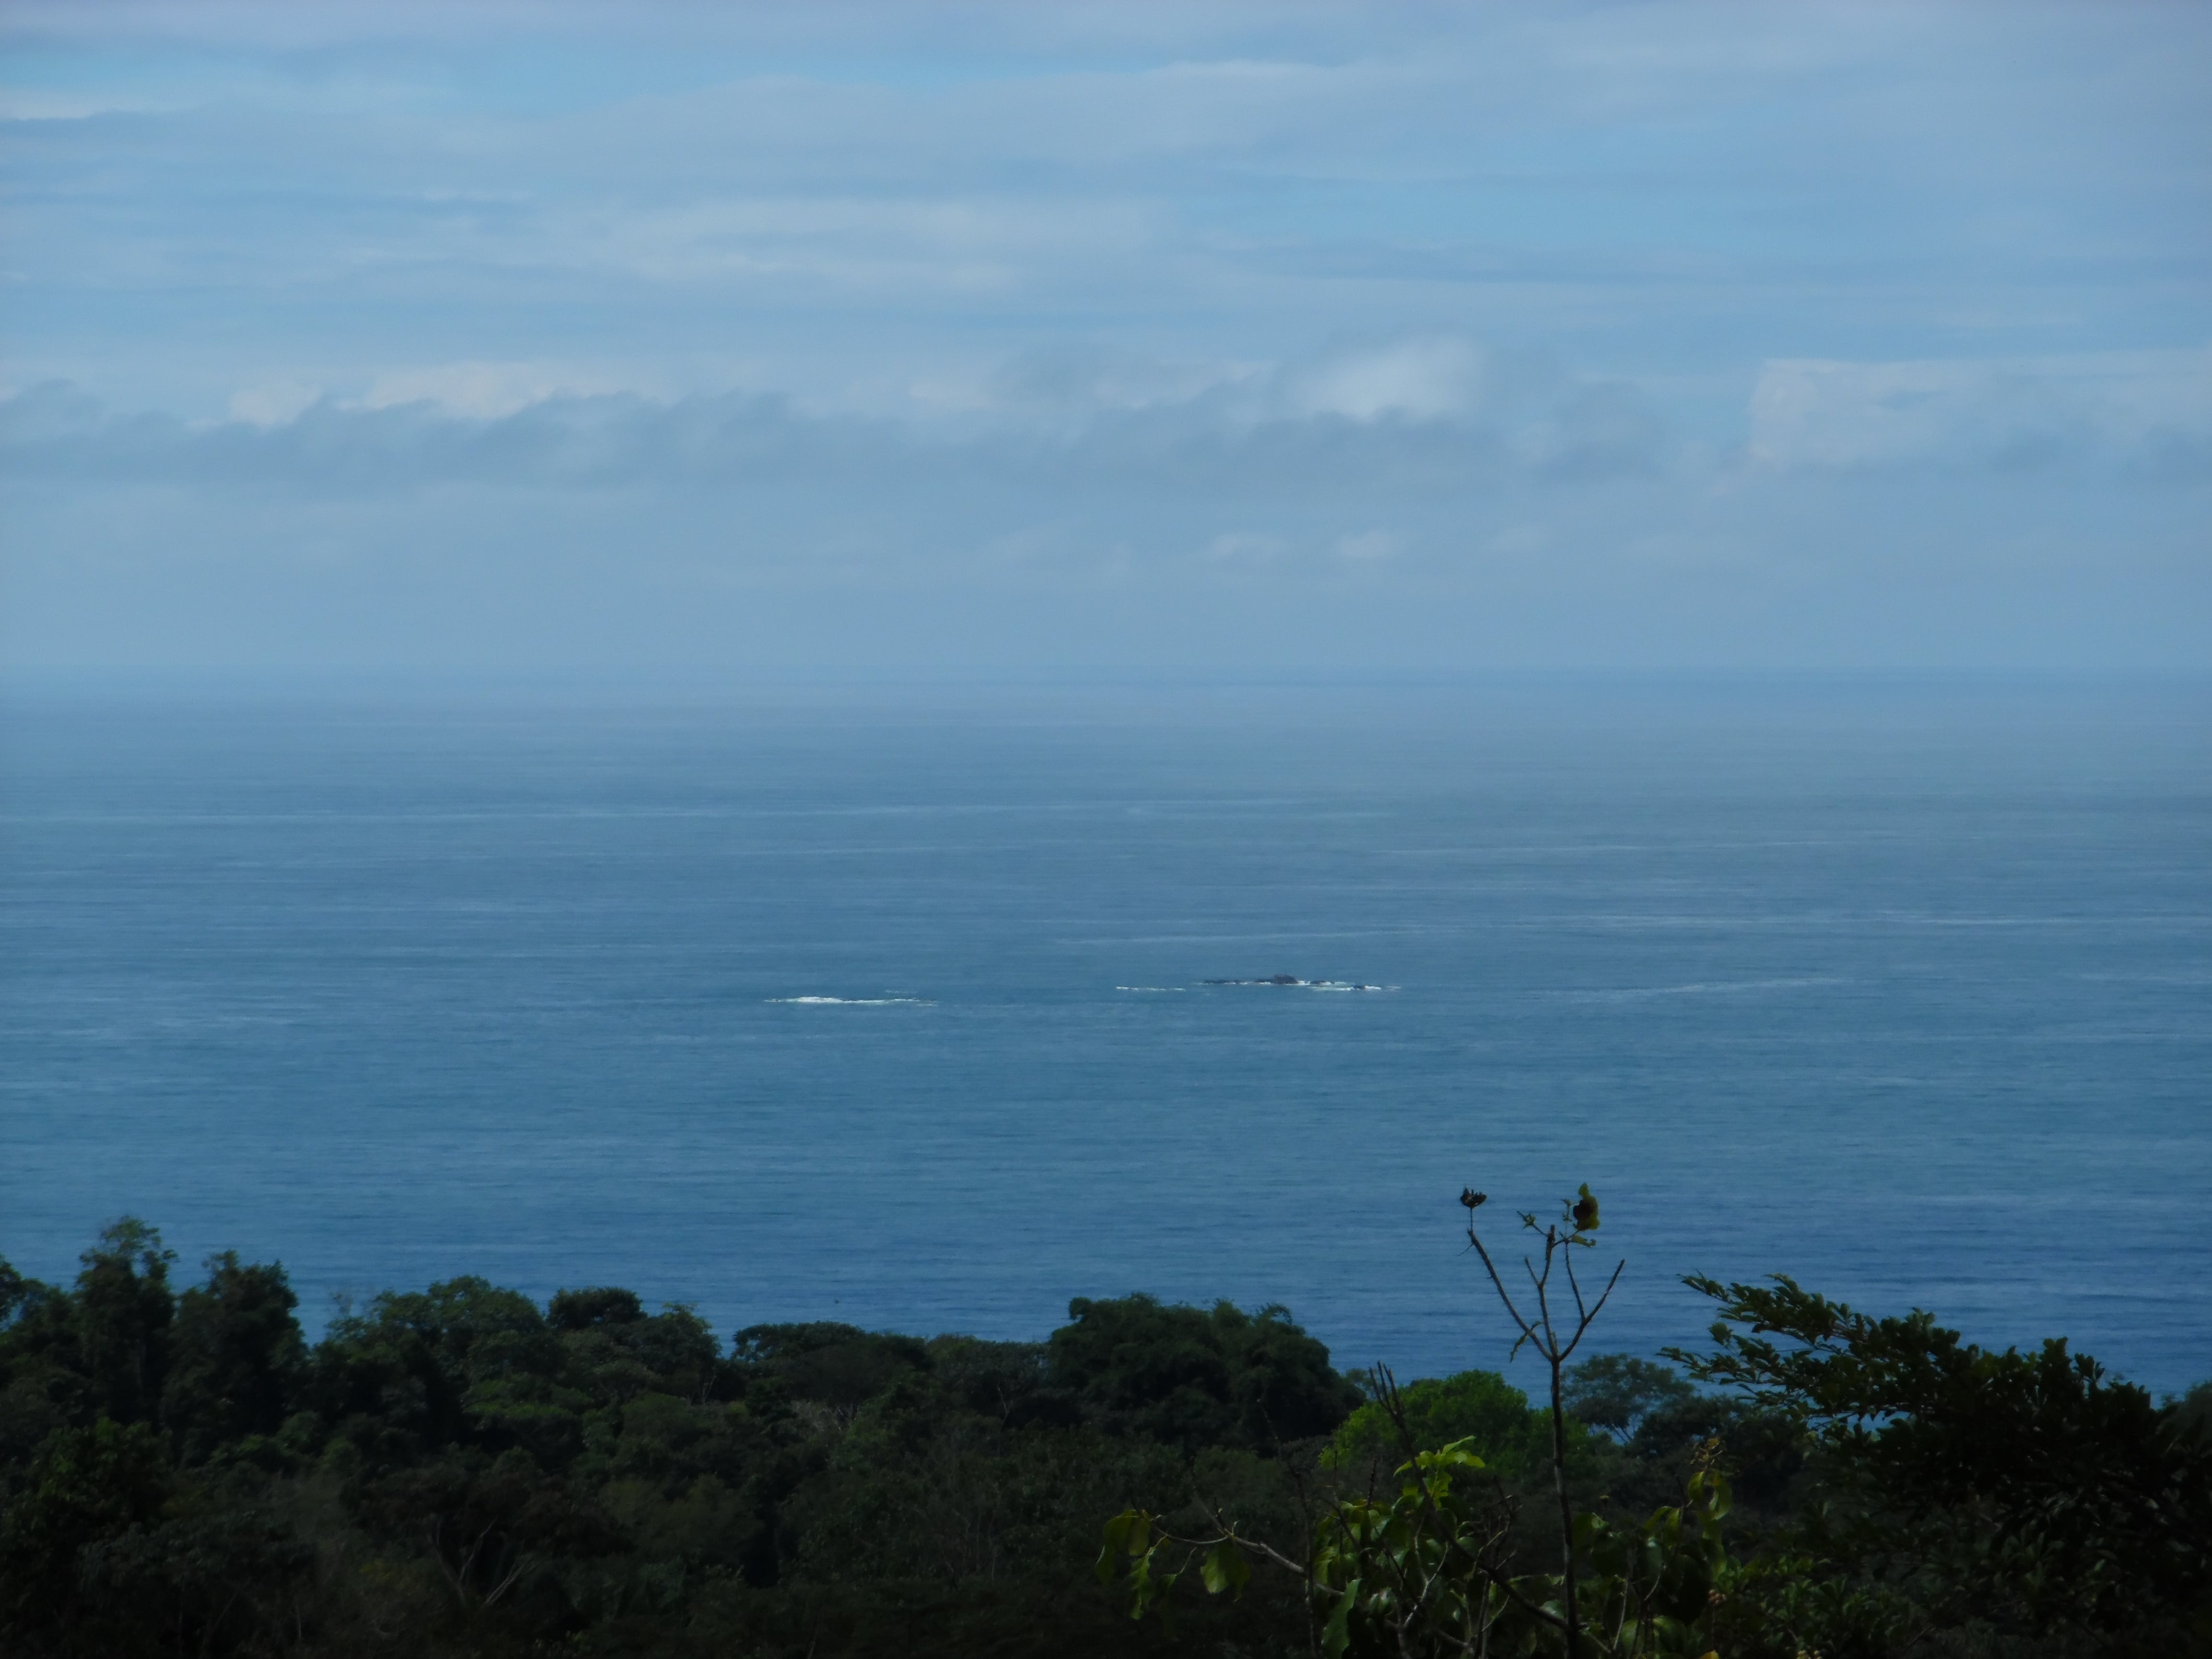 1.8 ACRES - Ocean View Lot With View Of Ballena Islands And Great Access!!!